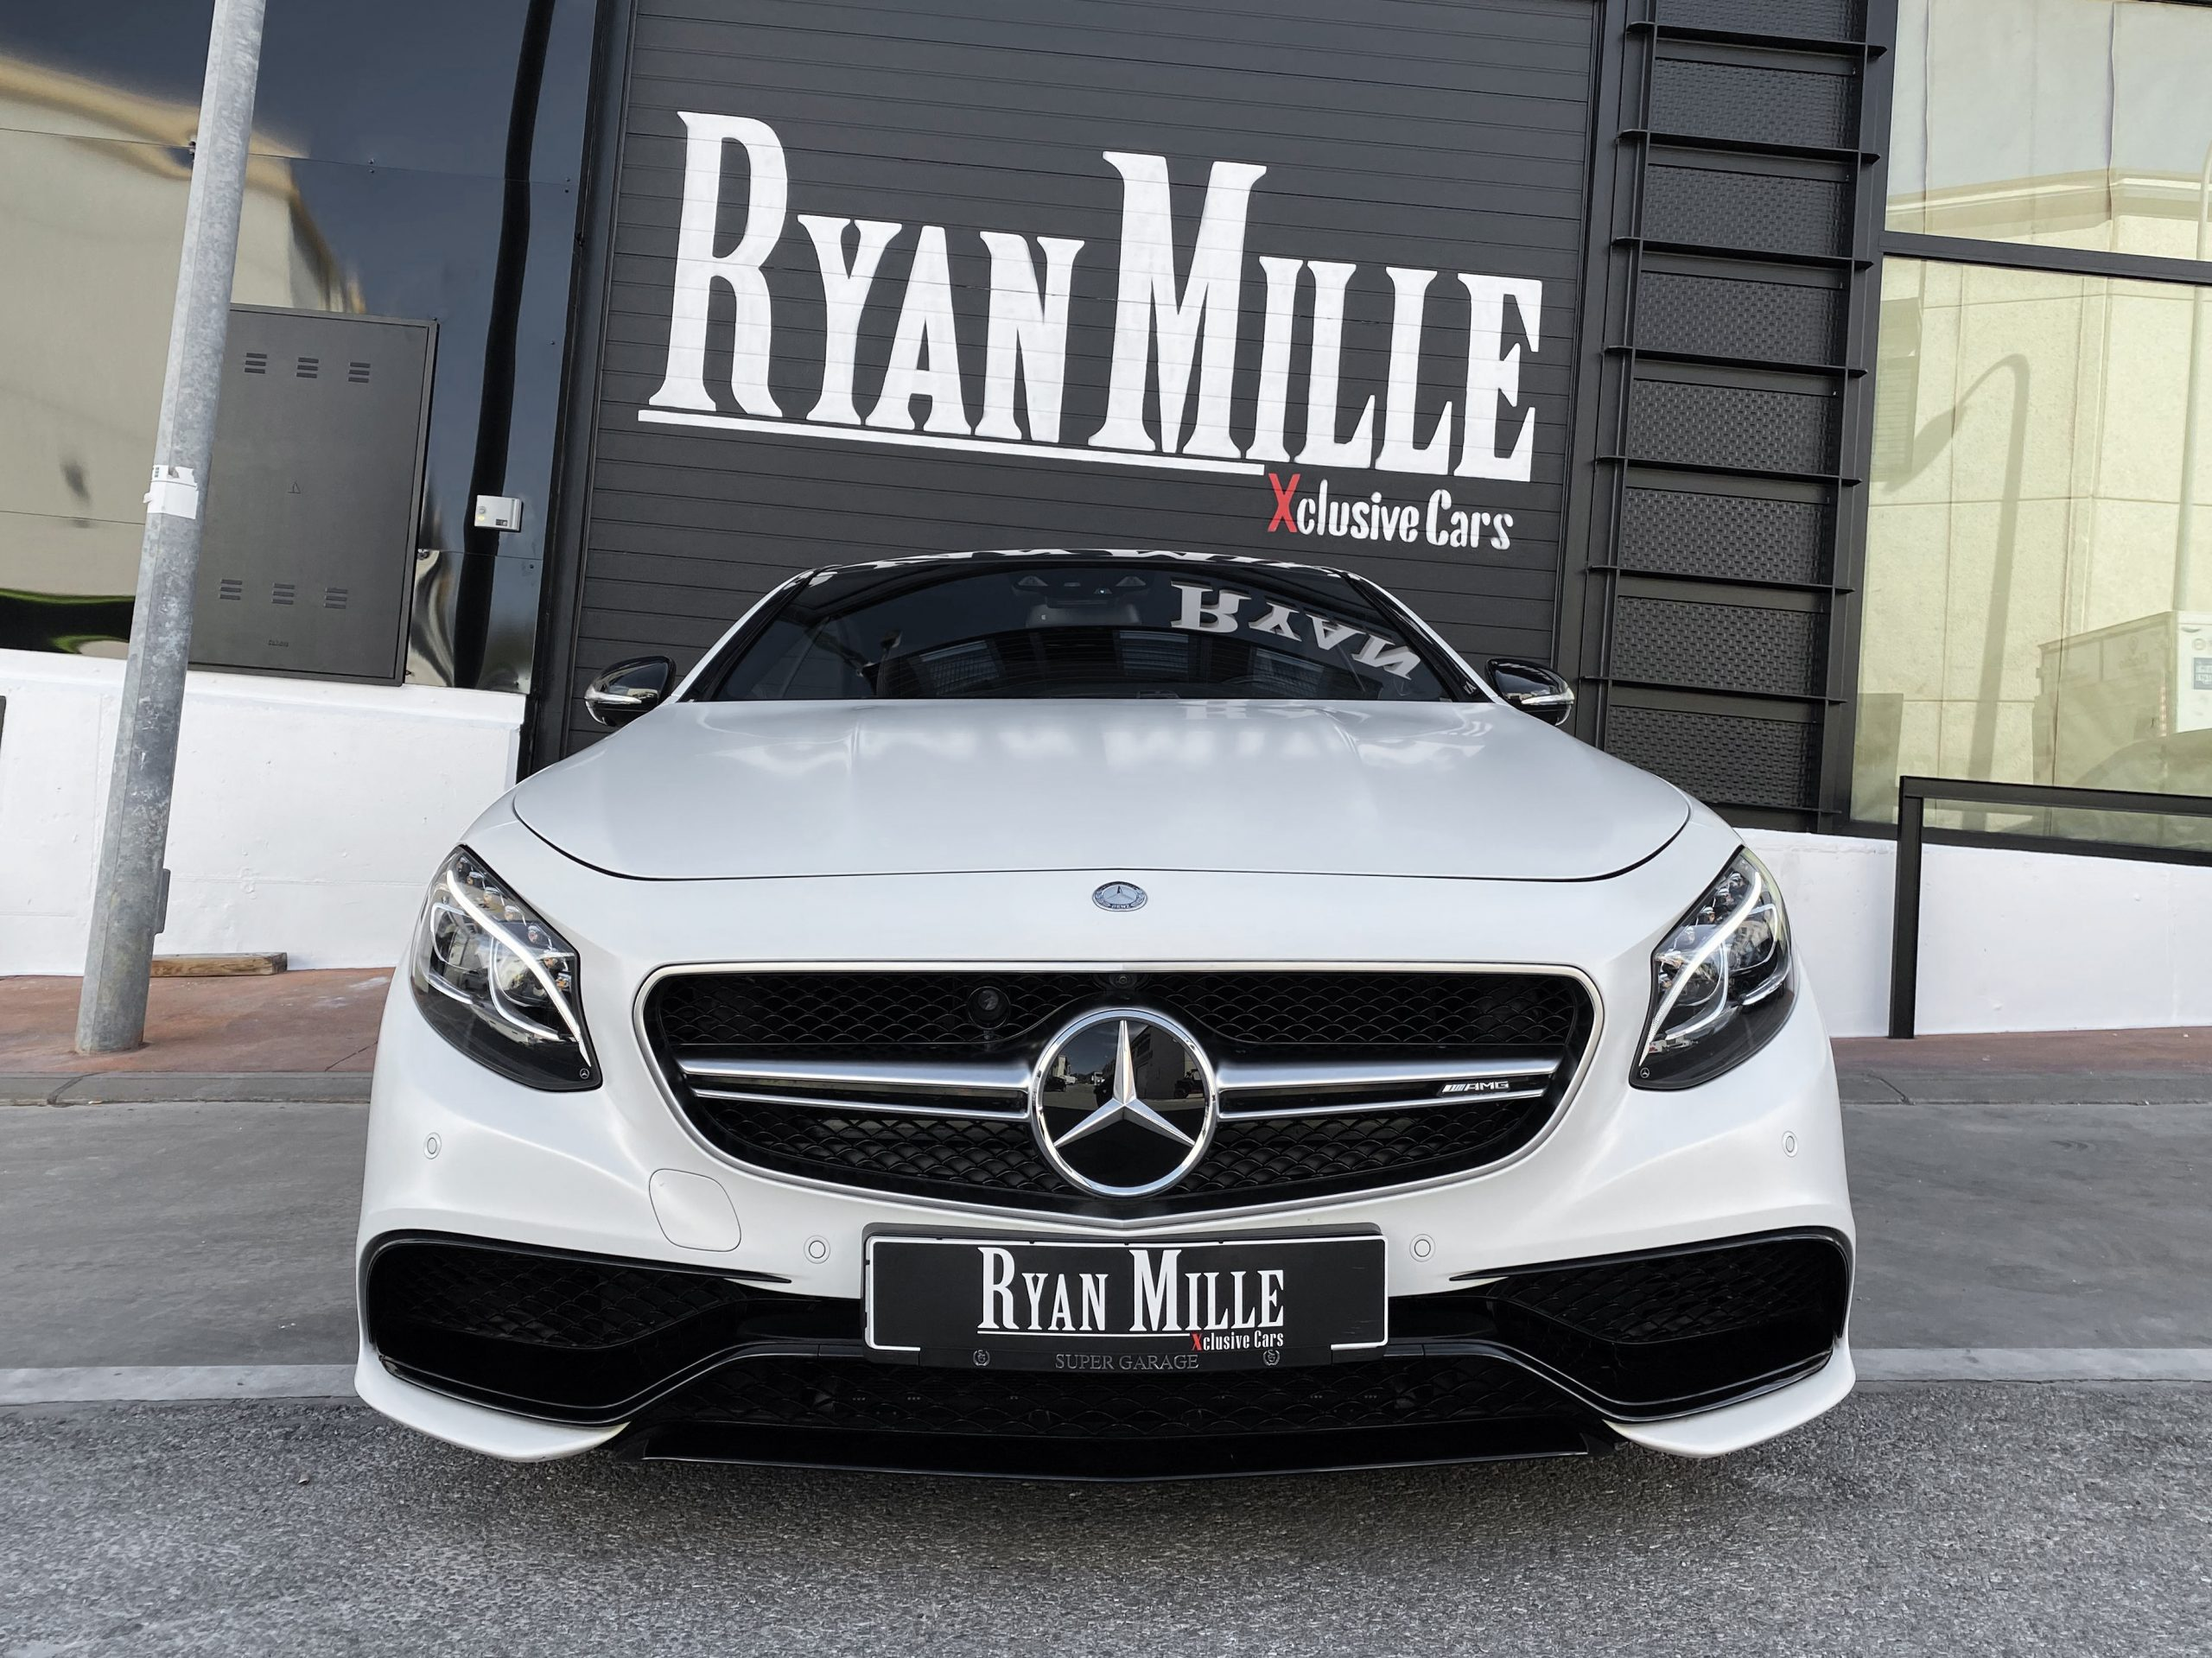 Mercedes Benz S63 Amg Coupe Ryan Mille Xclusive Cars